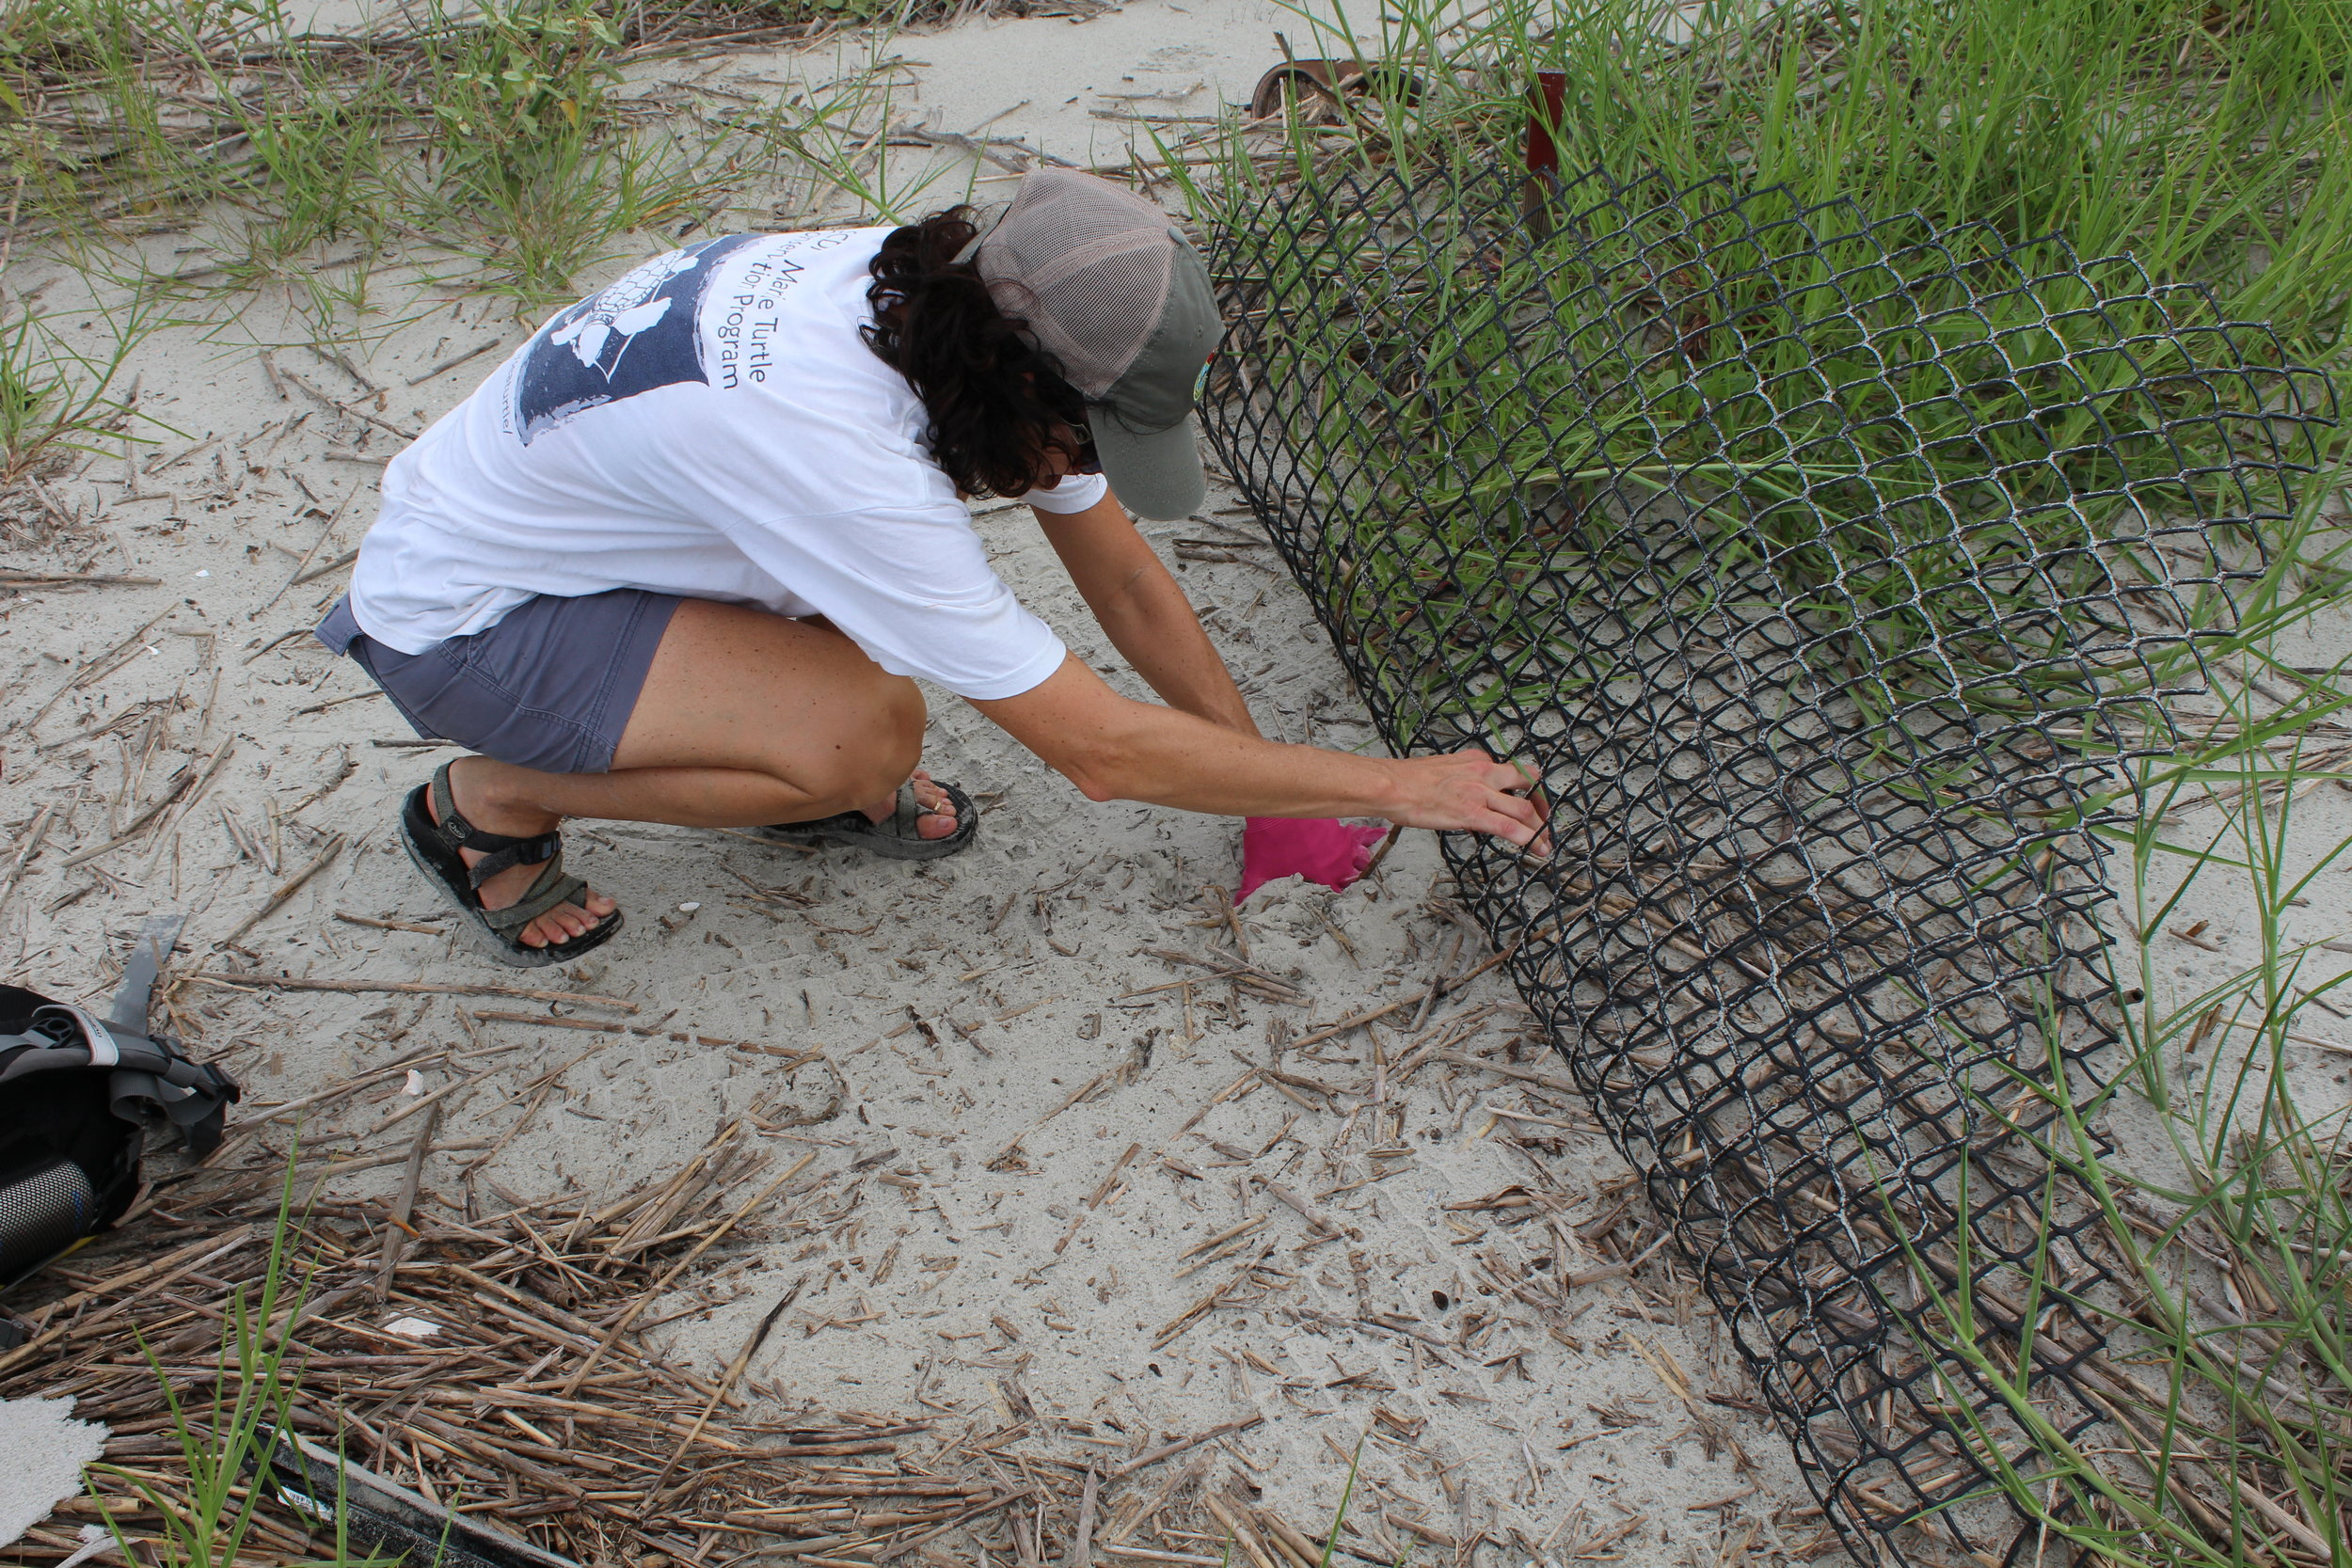 Michelle Pate peels back a predator guard over a hatched sea turtle nest. SCDNR sea turtle biologists work to count, protect, and monitor sea turtle nests on remote islands across the coast. (Photo: E. Weeks/SCDNR)